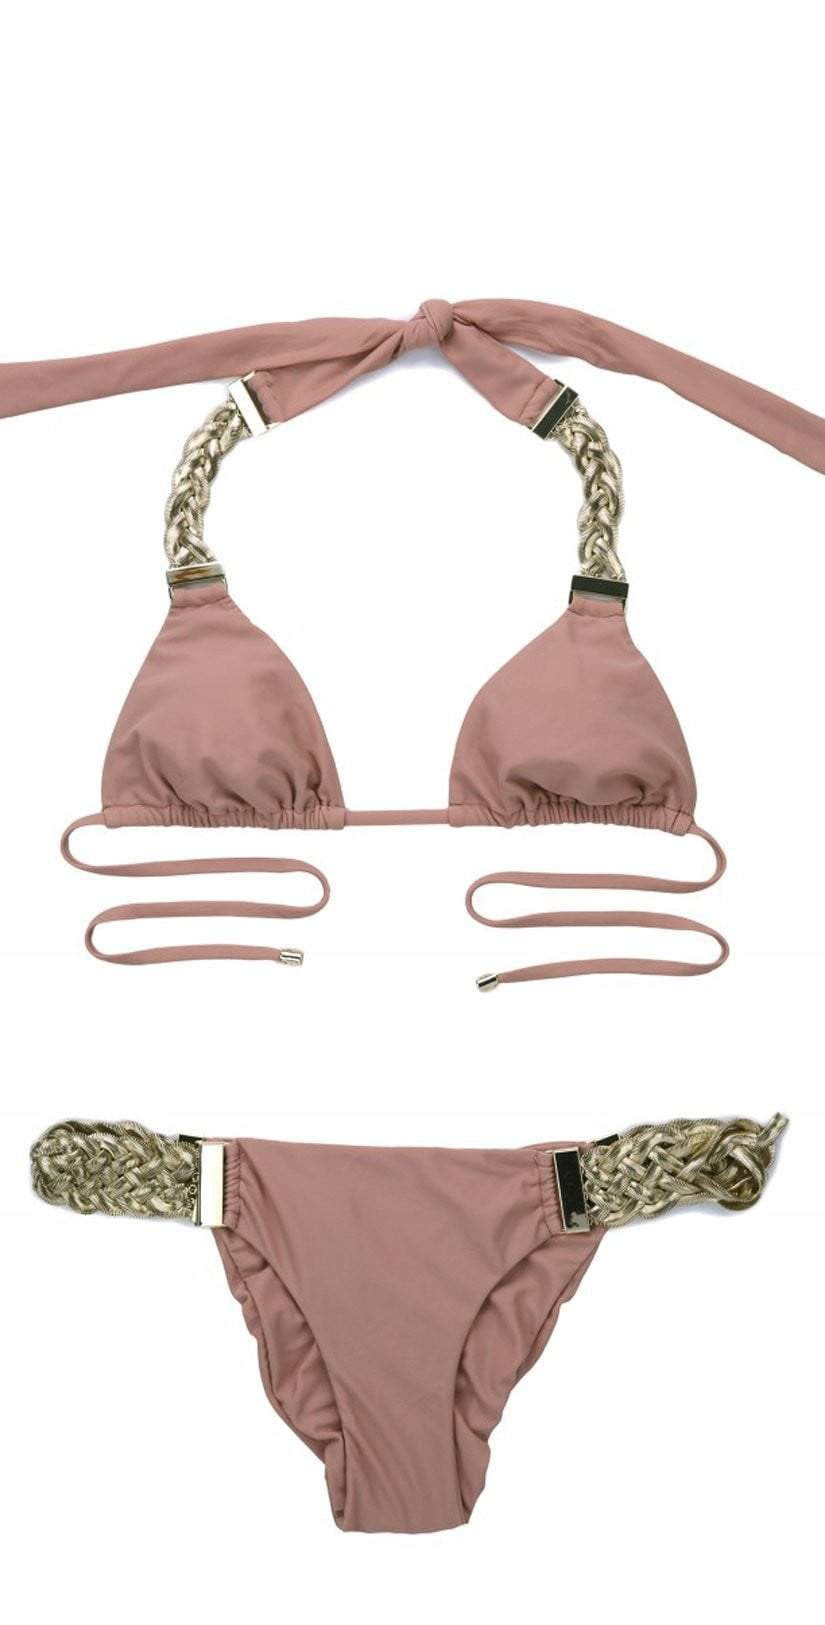 Beach Bunny Alexa Triangle Top in Whiskey Rose B18100T1-WHRS flat image